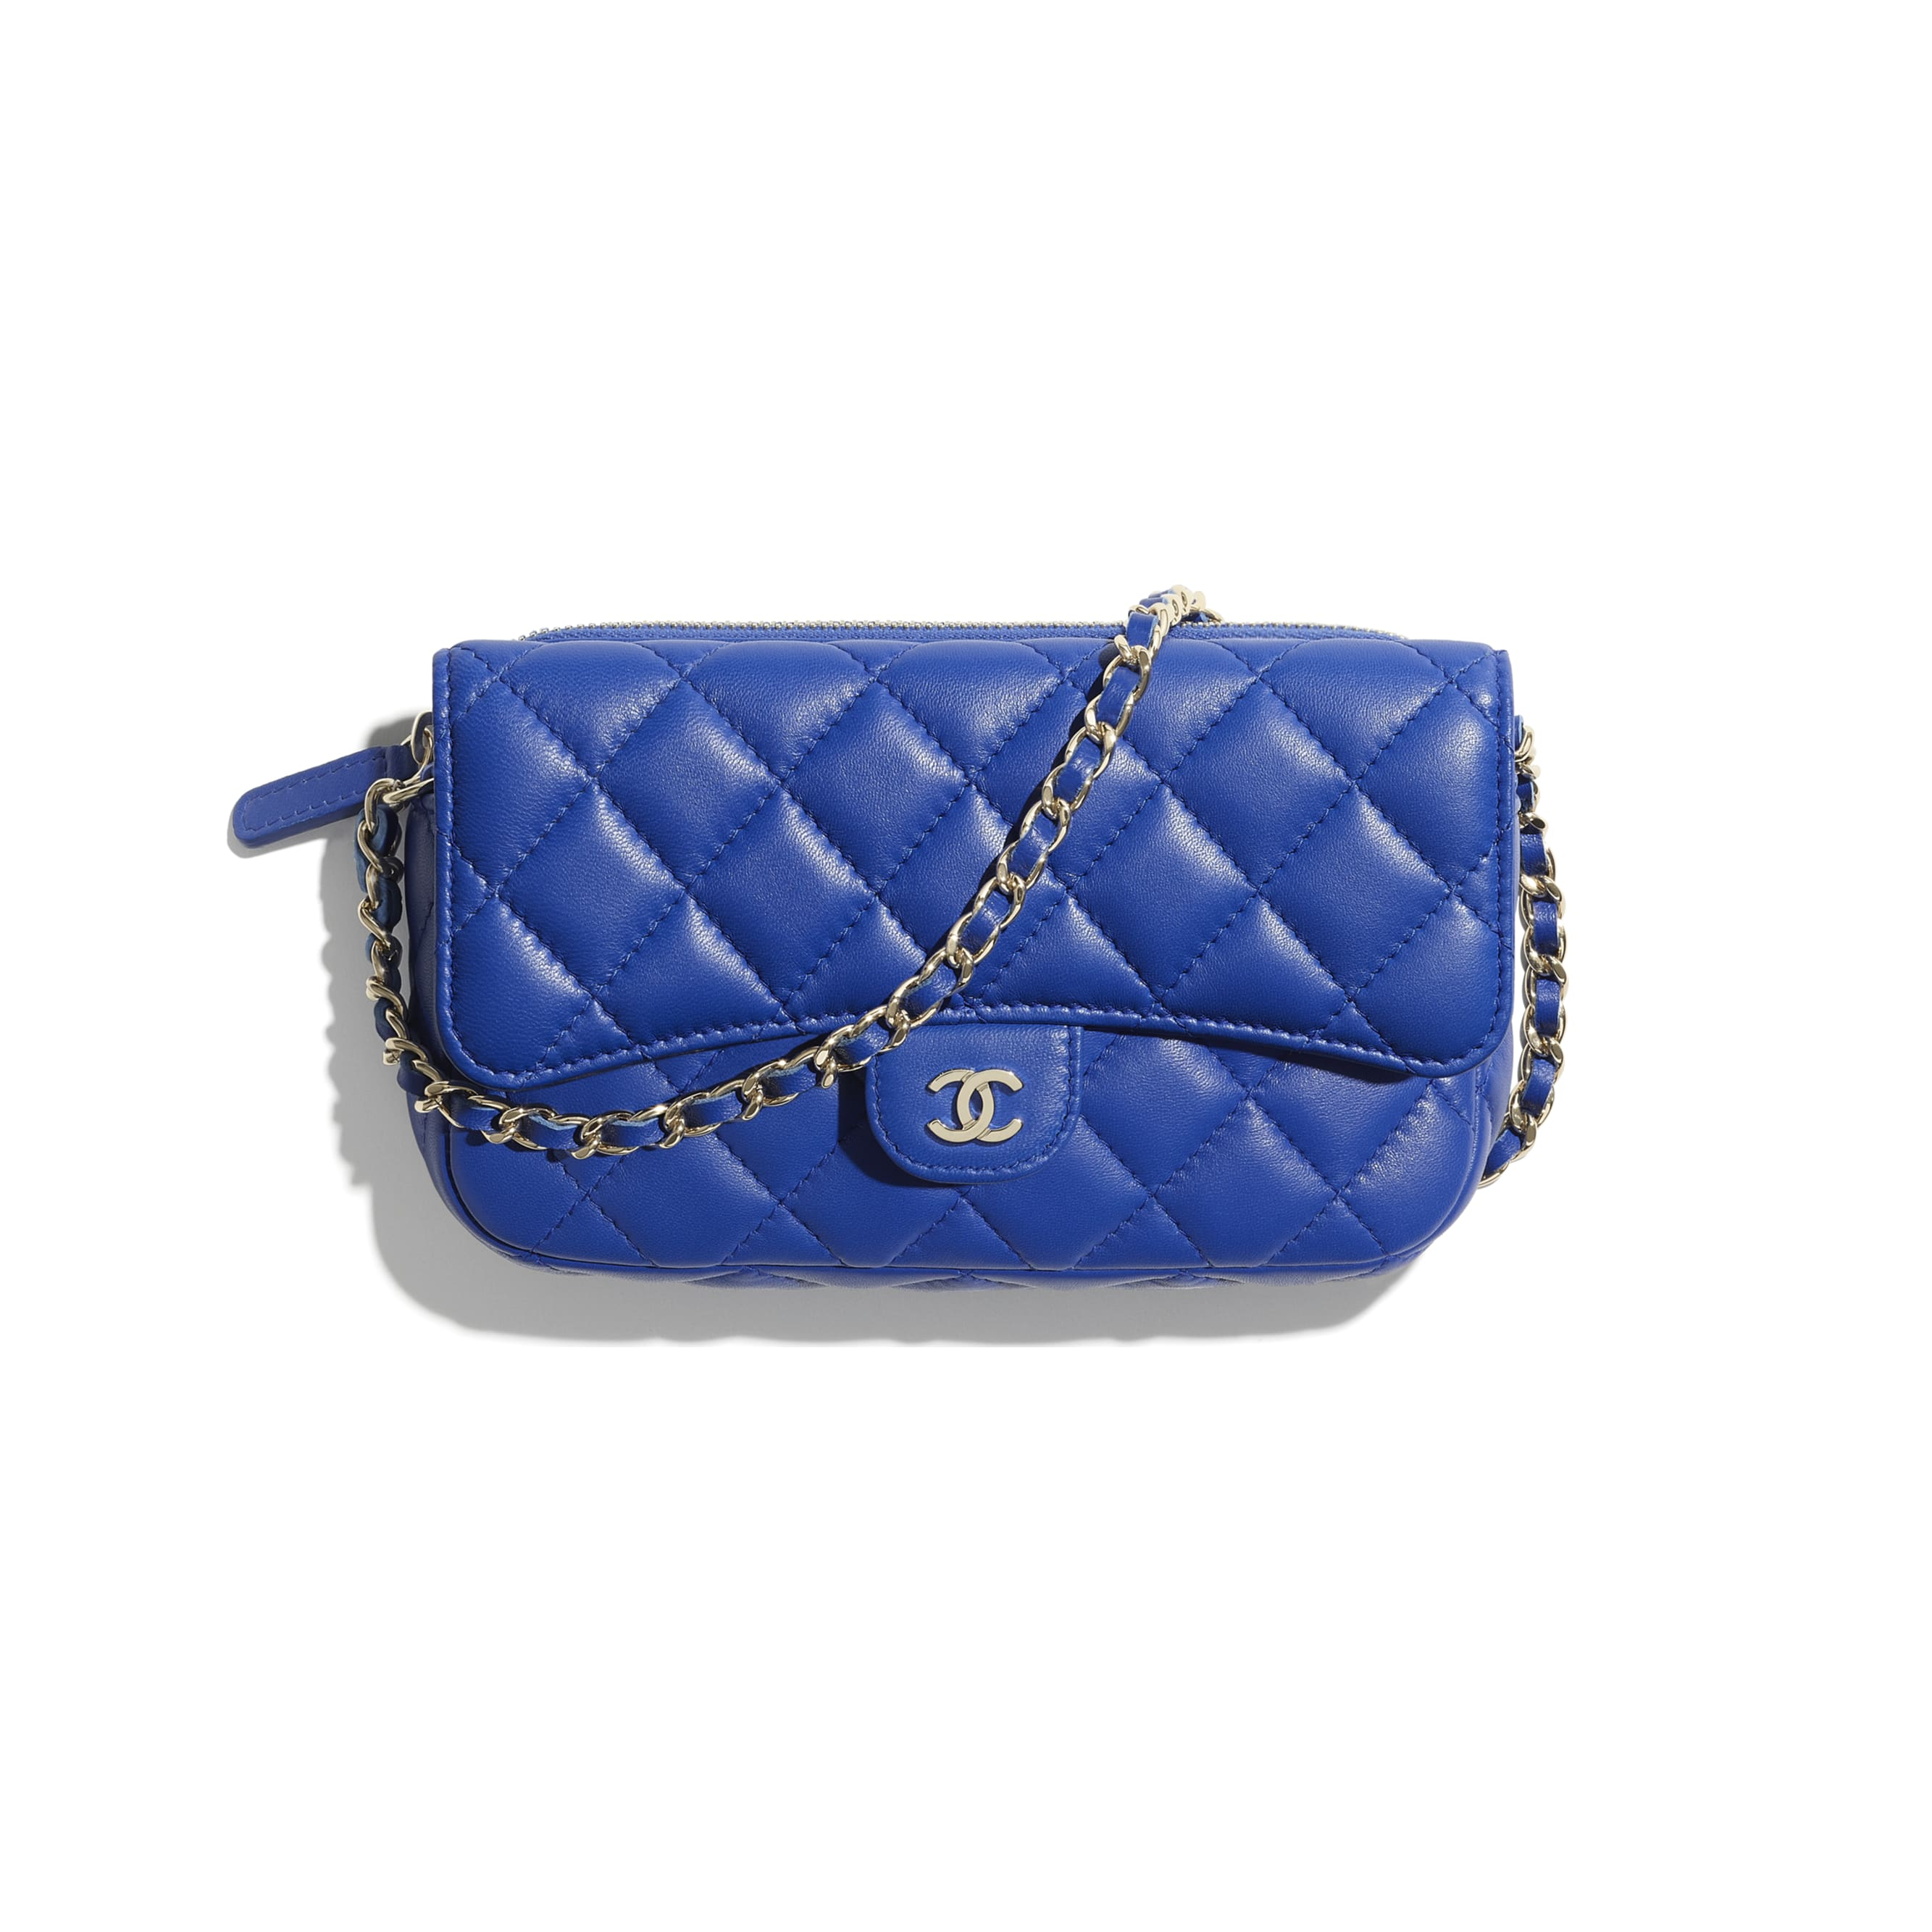 Classic Flap Phone Holder with Chain - Blue - Lambskin - CHANEL - Default view - see standard sized version